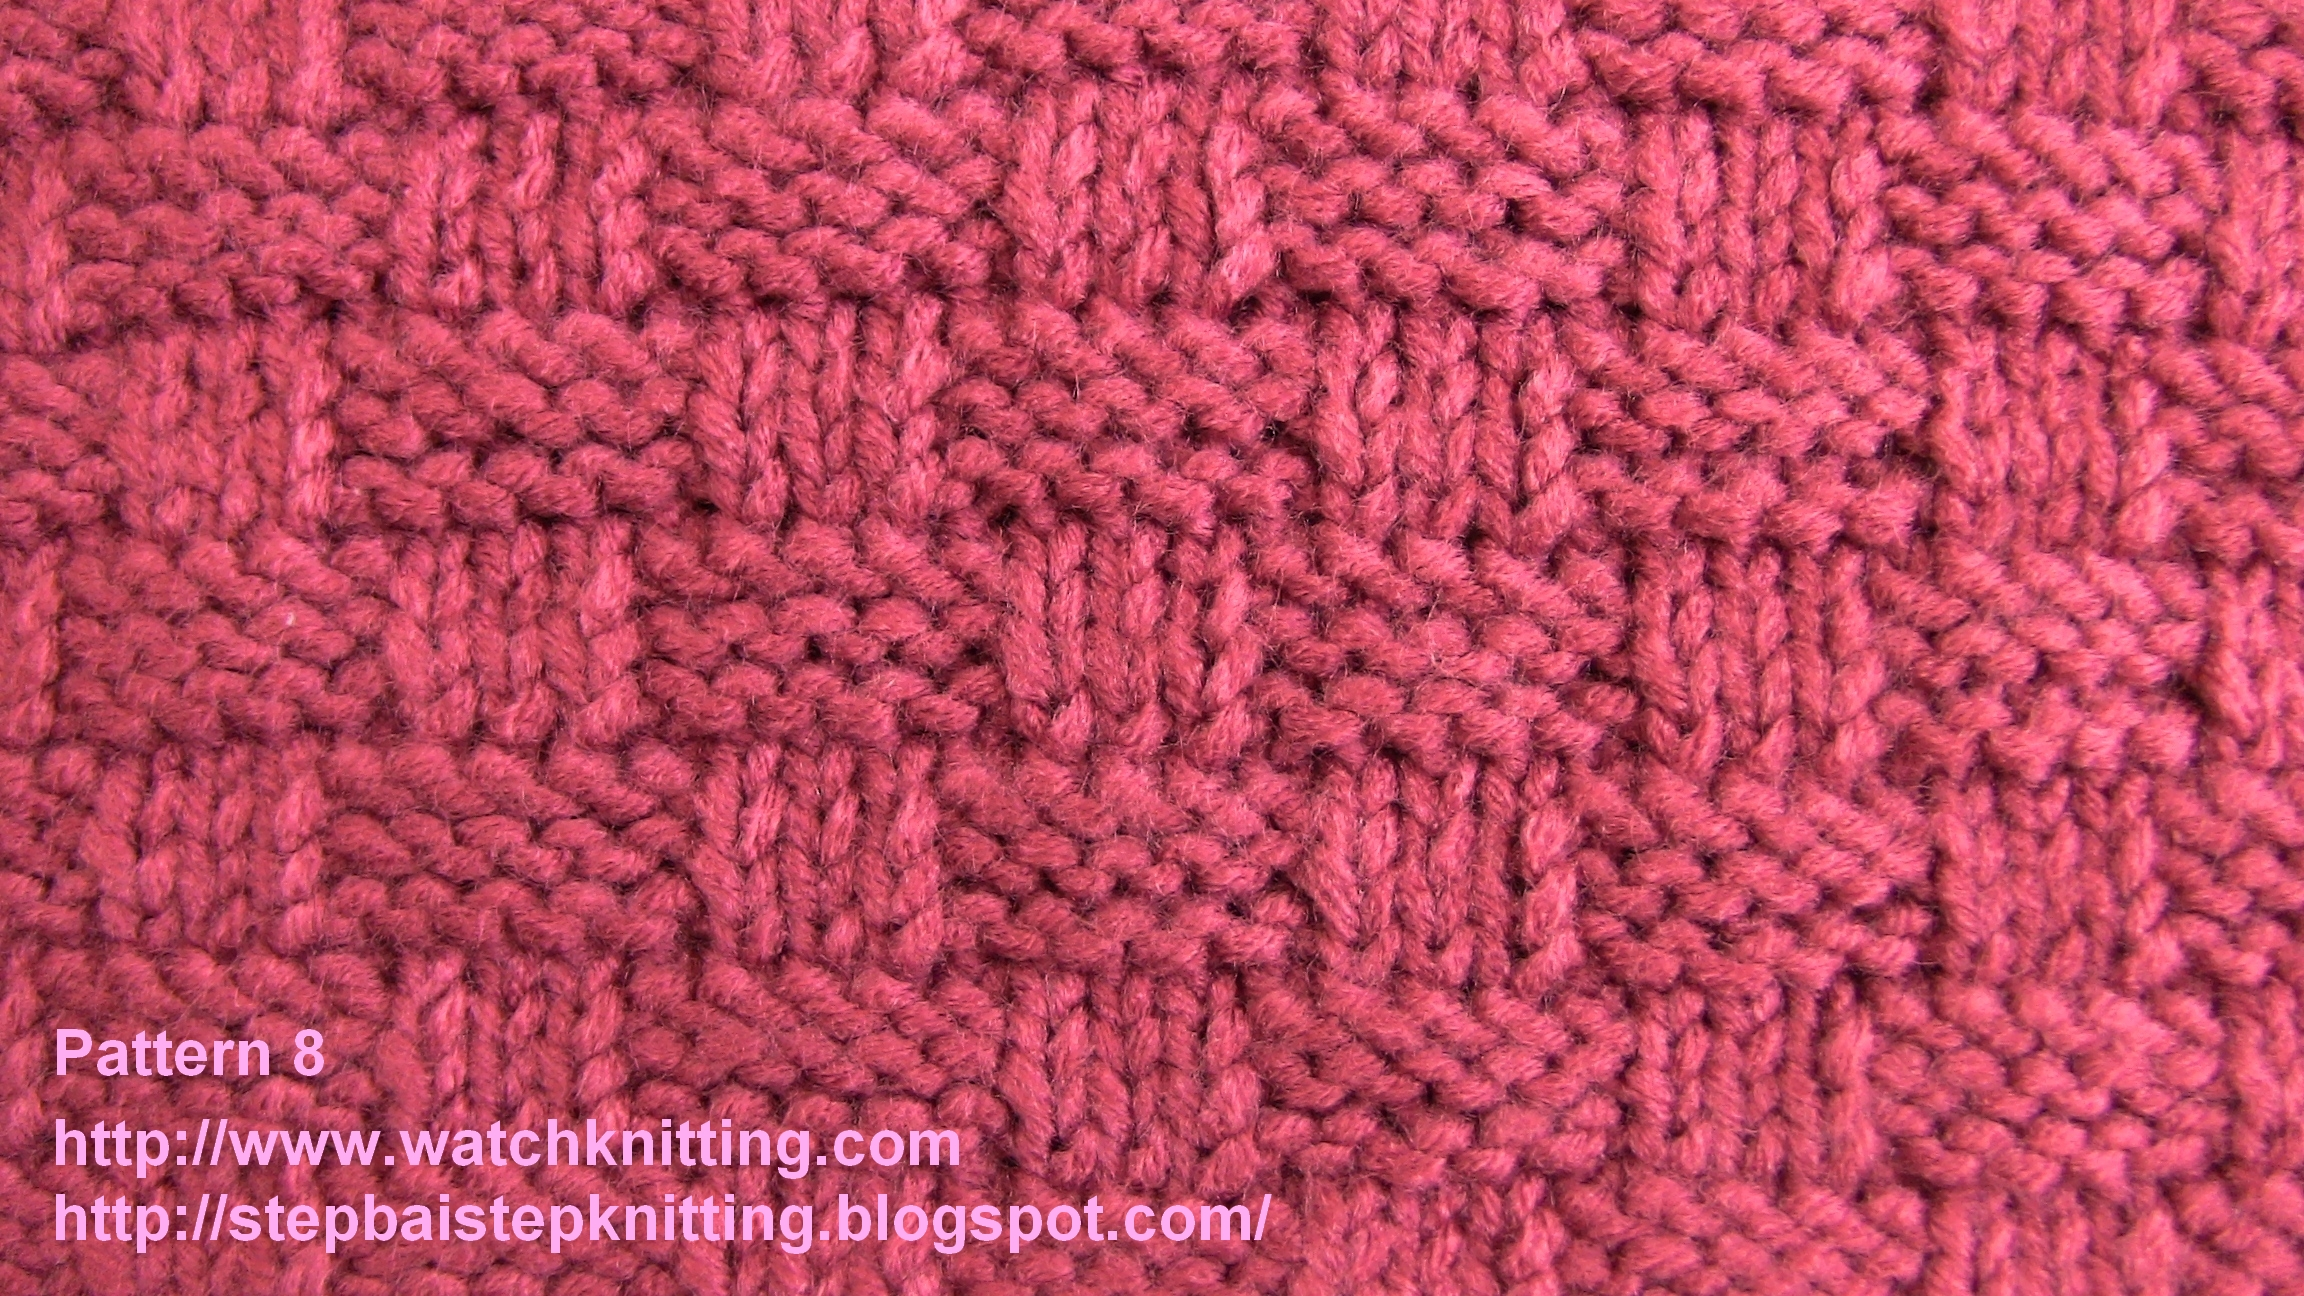 Simple Knitting Stitches : watch Simple Knitting Models - Pattern 8 (Basket model)